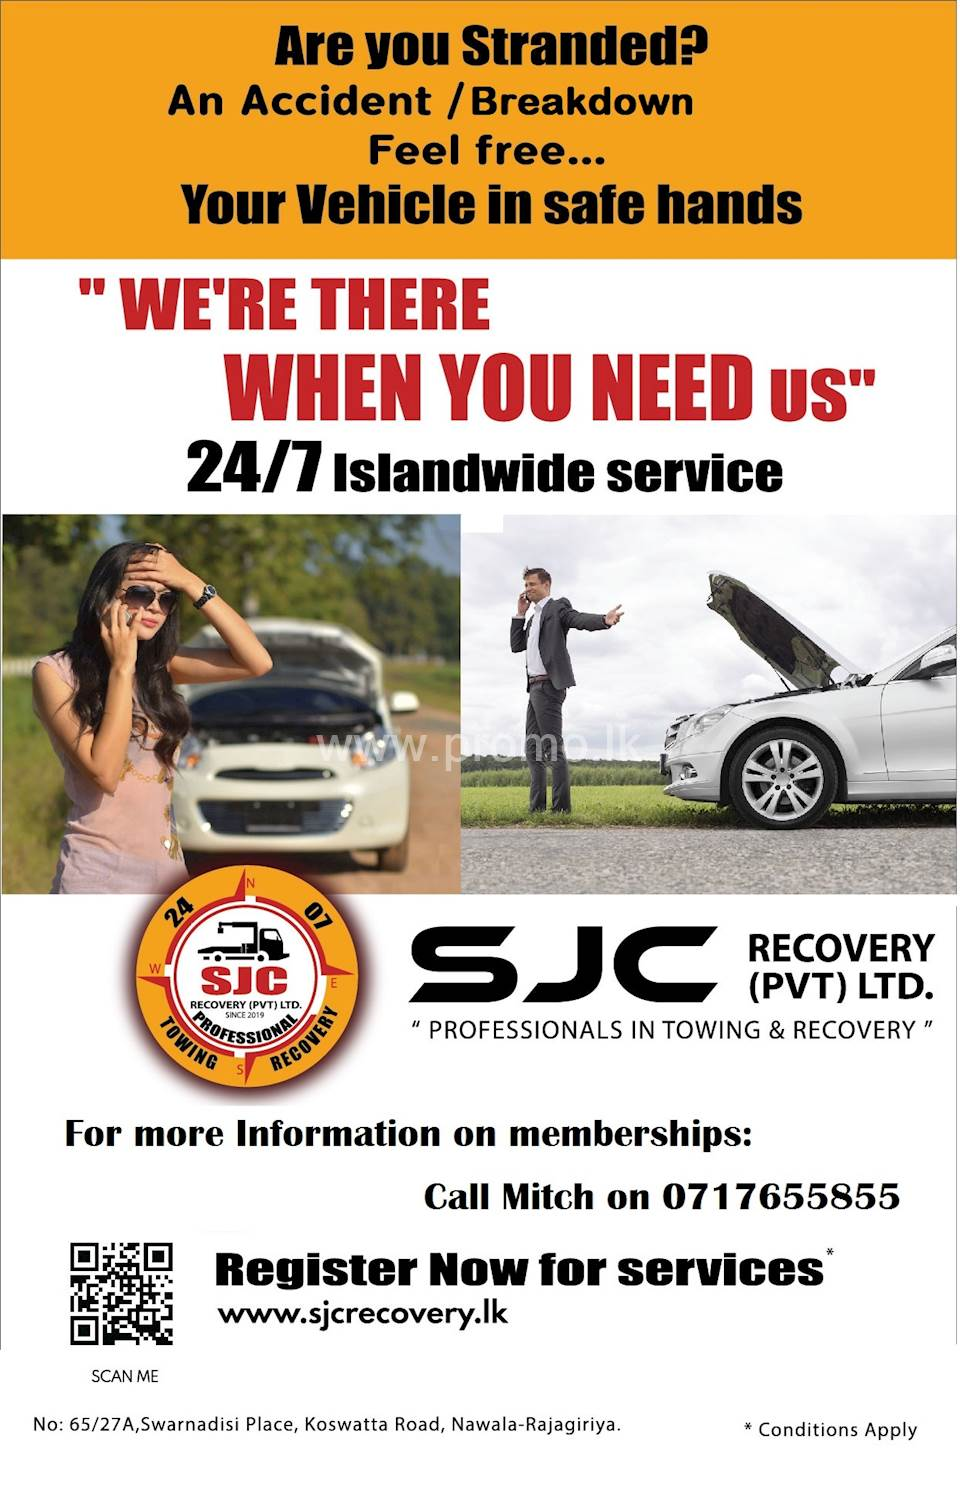 Vehicle Recovery & Towing Service from SJC Recovery (Pvt) Ltd